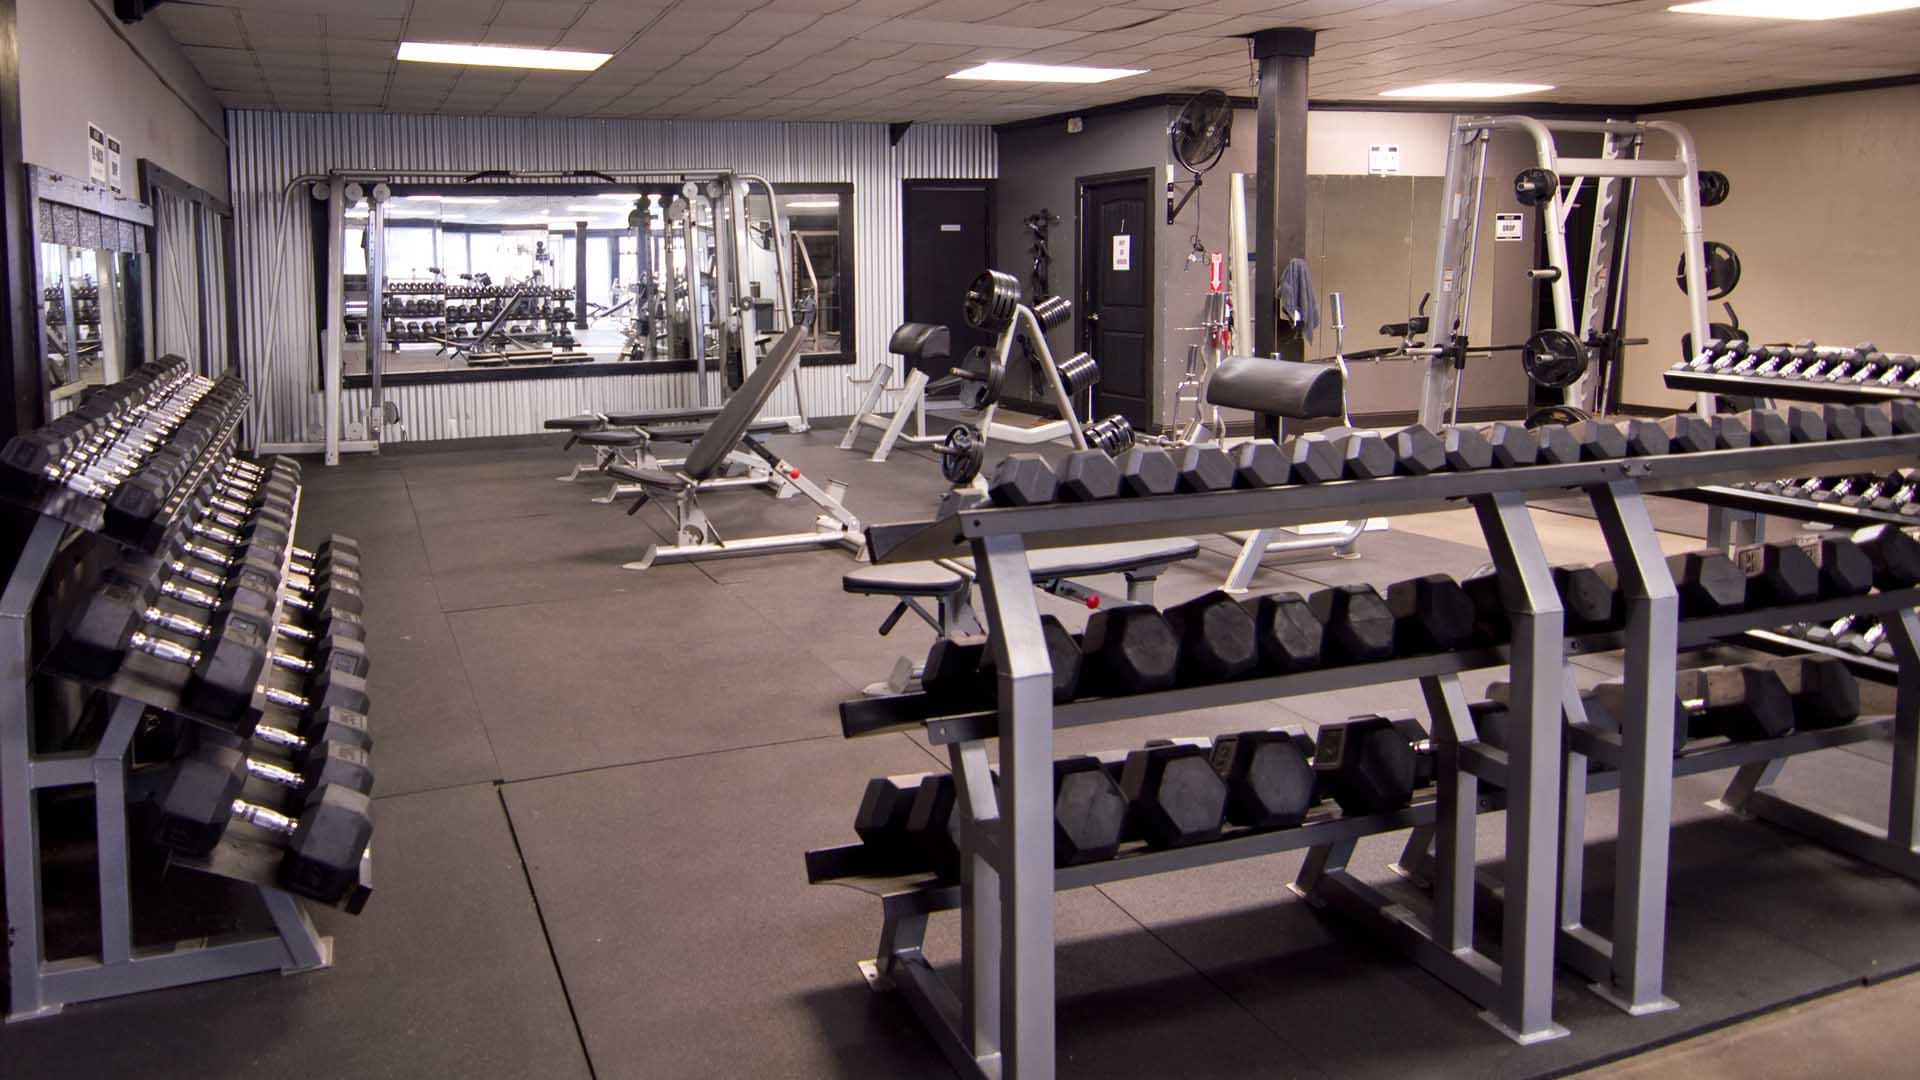 Three racks of dumbbells form a U shape and enclose the free weight section of the gym.